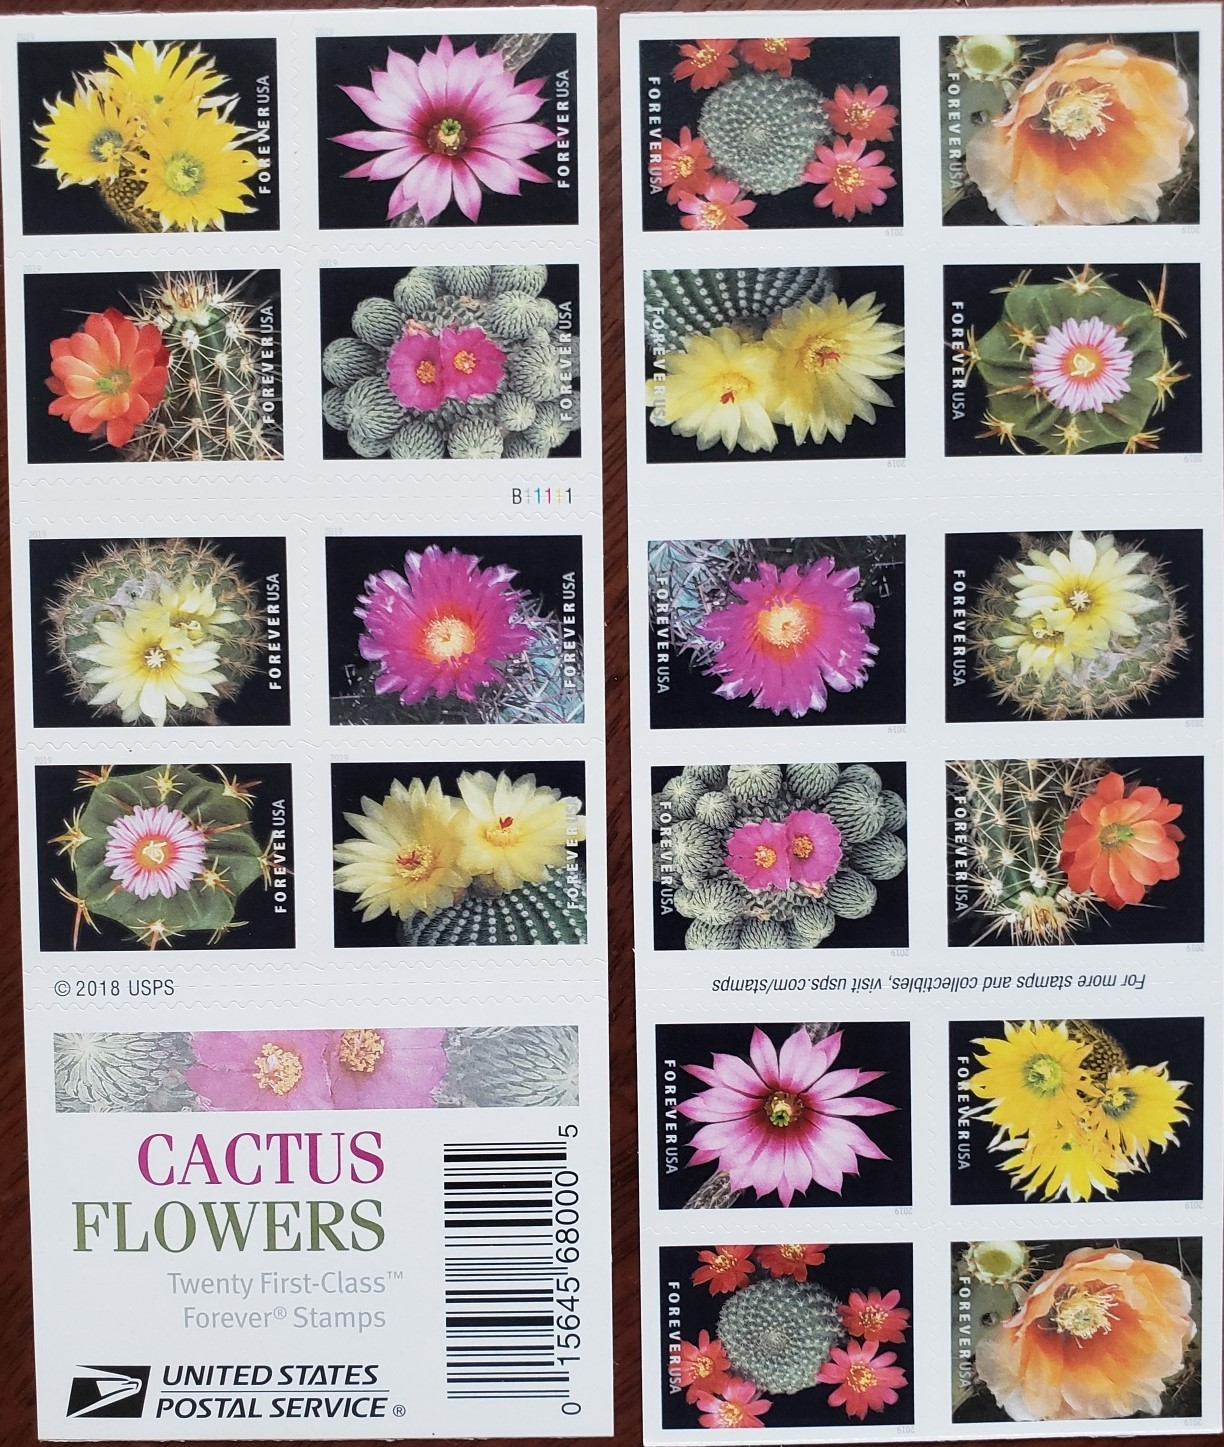 Cactus Flowers- 2018 USPS 20 Forever Stamps Sheet